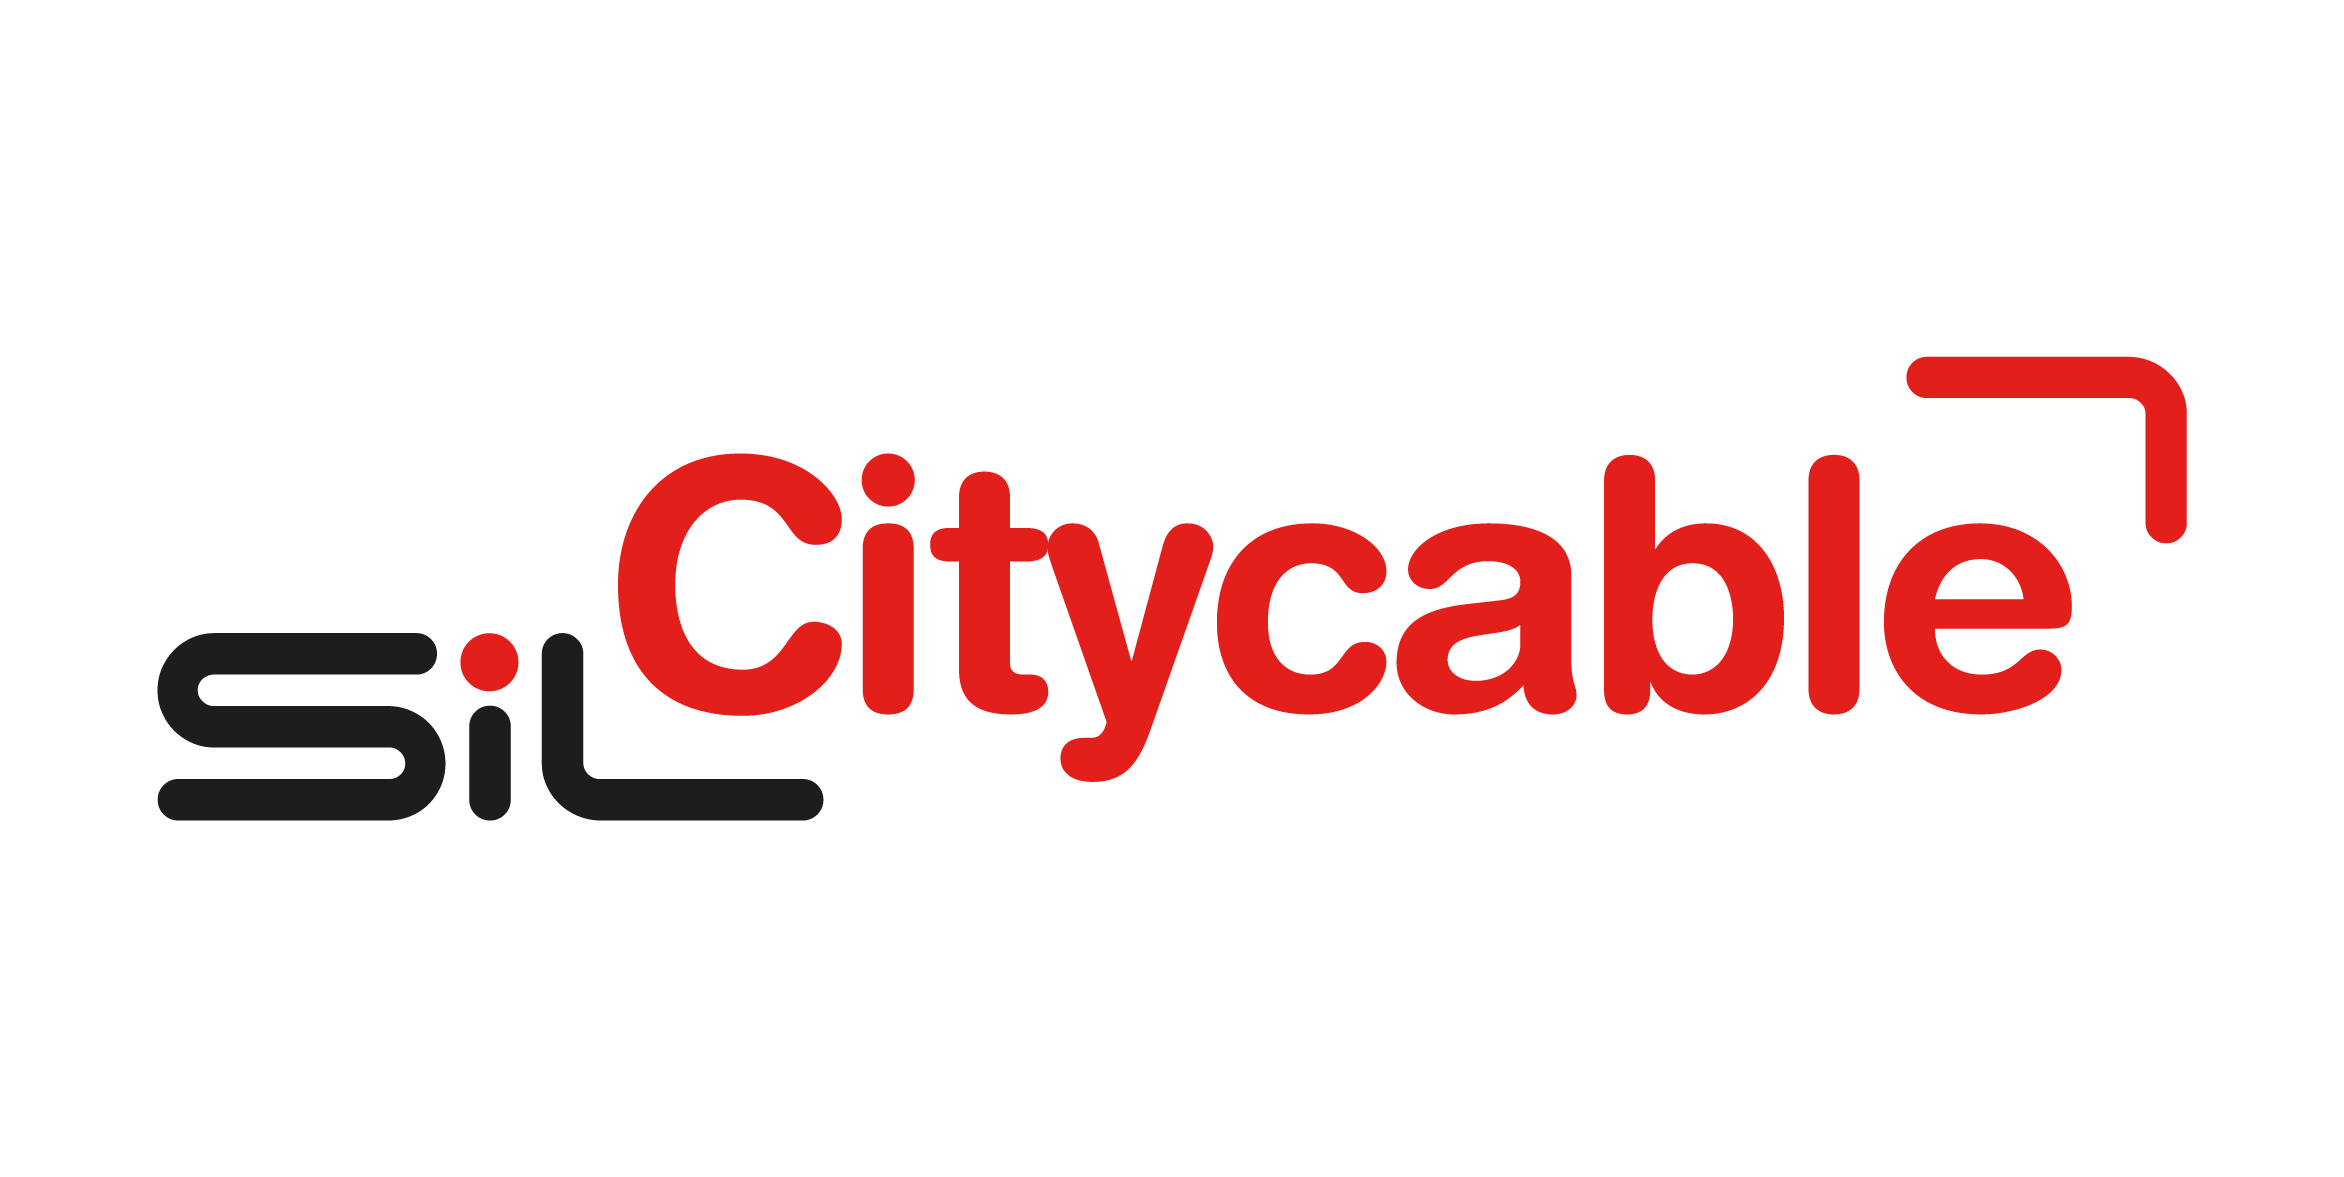 silcitycable-01